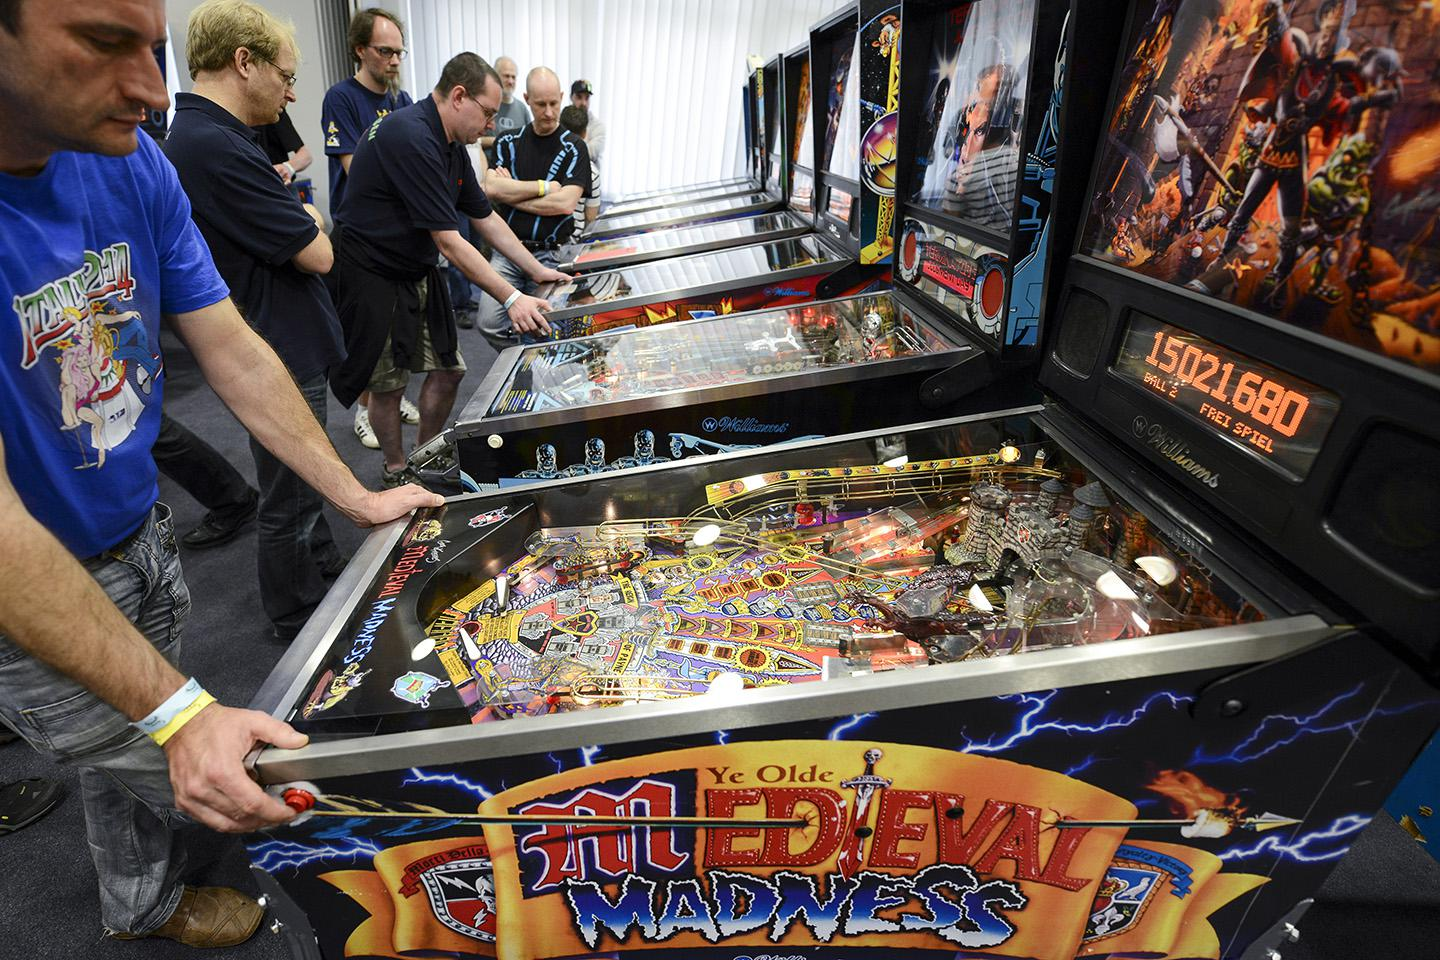 Competition participants play pinball during the open German pinball championships in Nuremberg, Germany, 24 May 2014.